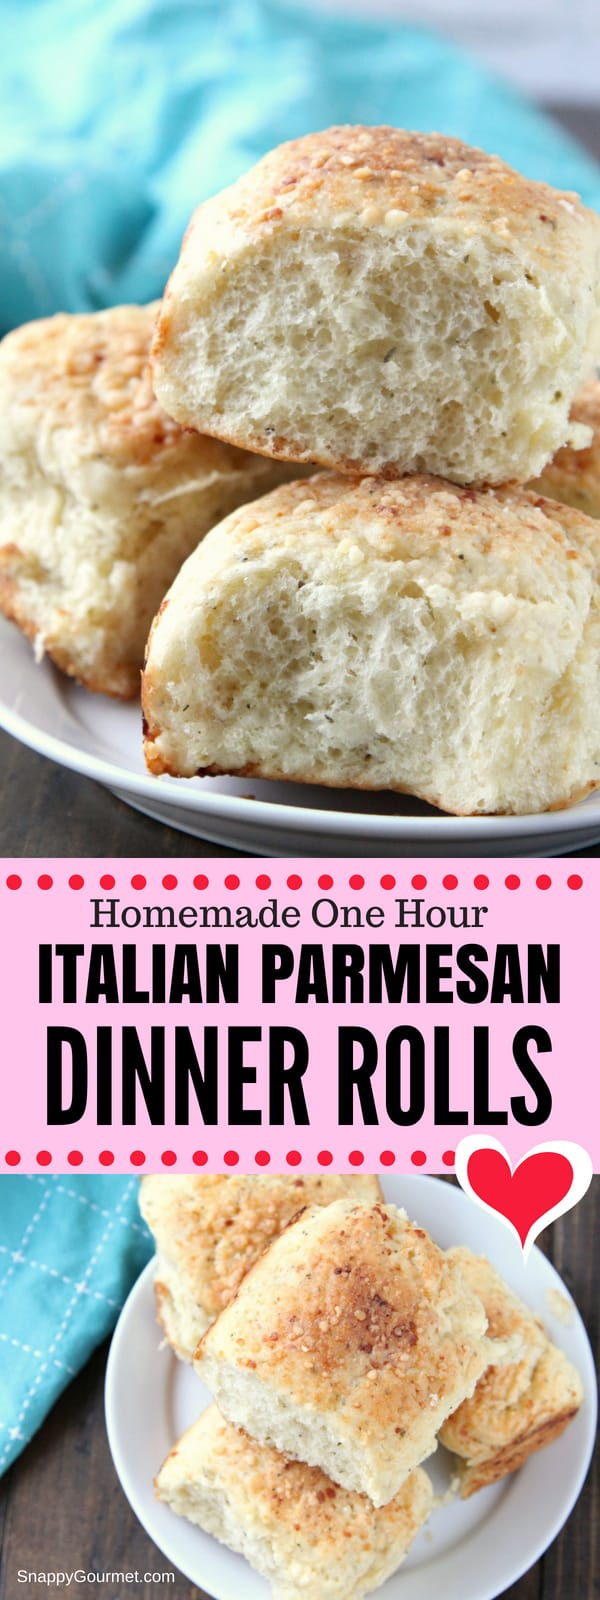 Dinner Rolls, quick and easy Italian Parmesan roll recipe that is ready in one hour! Learn how to make dinner rolls from scratch. These one hour dinner rolls come out soft and fluffy for the best homemade dinner rolls ever! #Rolls #Bread #Italian #SnappyGourmet #Recipe  #Parmesan #Homemade #Easy #Foodgasm